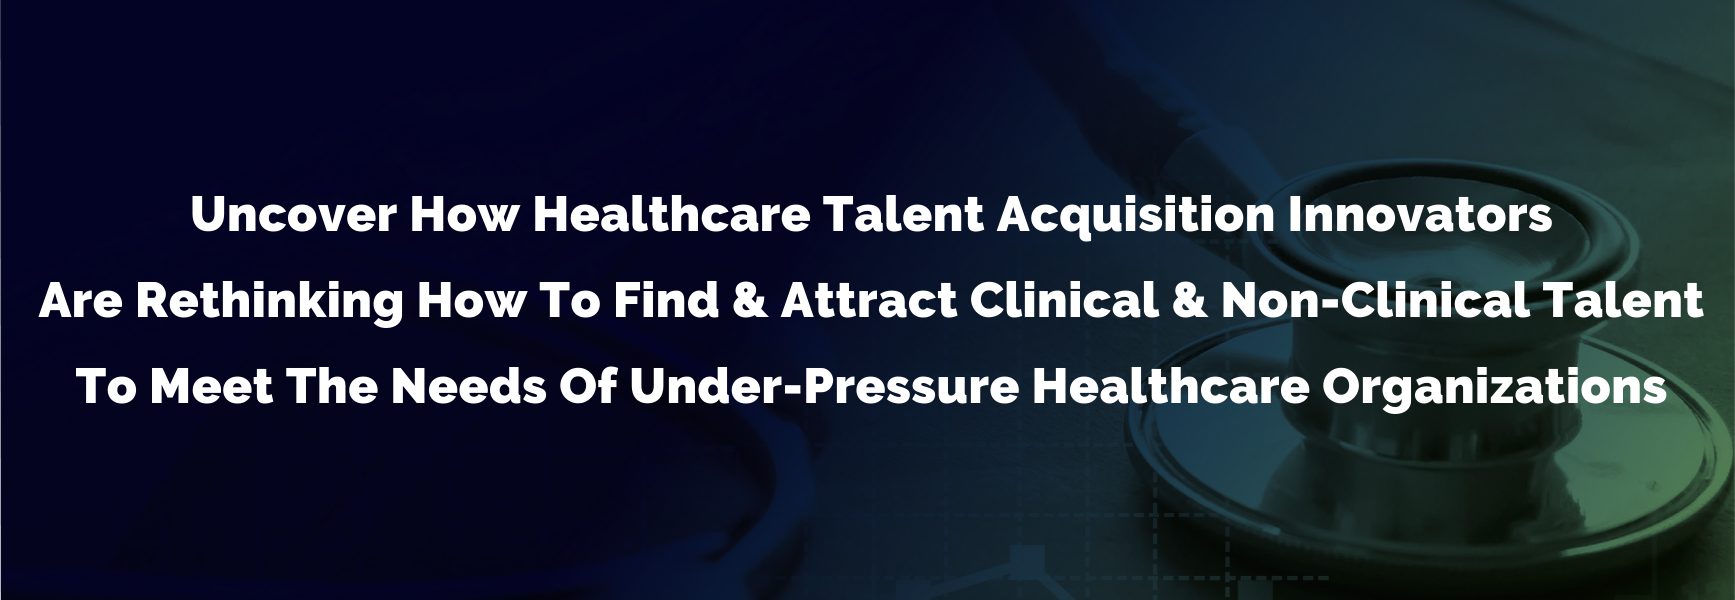 Uncover How Healthcare Talent Acquisition Innovators Are Rethinking How To Find & Attract Clinical & Non-Clinical Talent To Meet The Needs Of Under-Pressure Healthcare Organizations